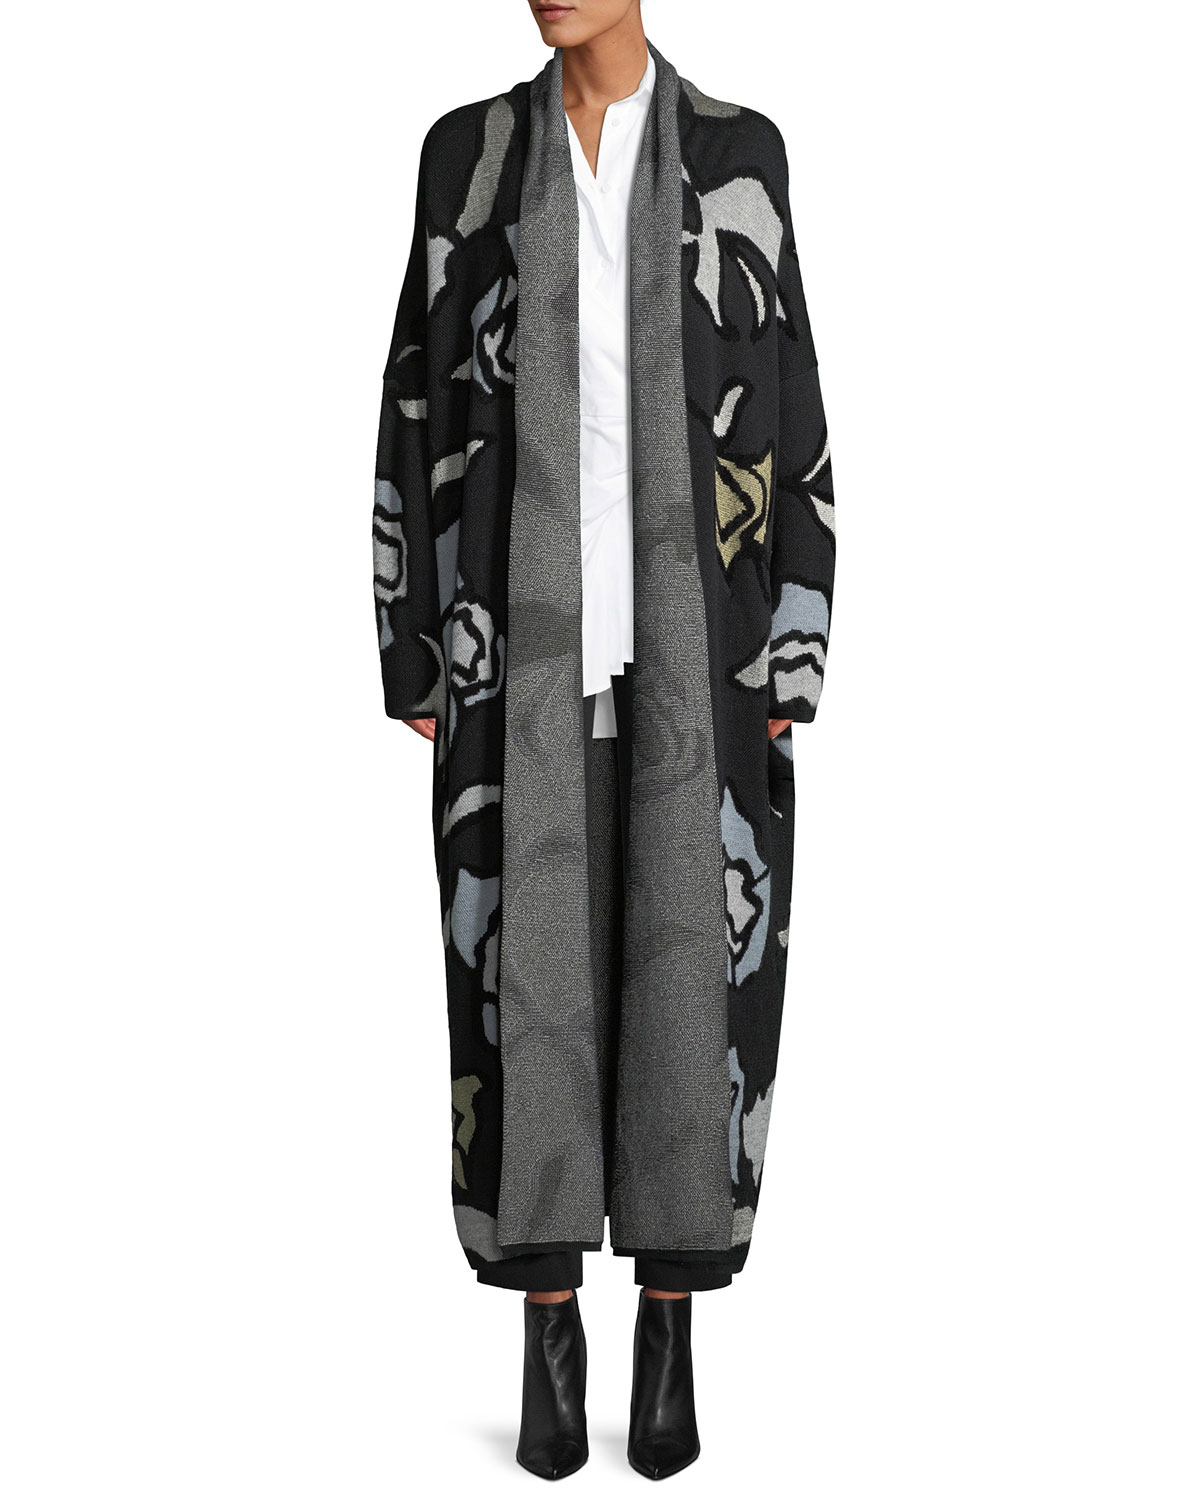 CHRISTIAN WIJNANTS Kavia Open-Front Floral-Jacquard Long Cardigan in Black Pattern